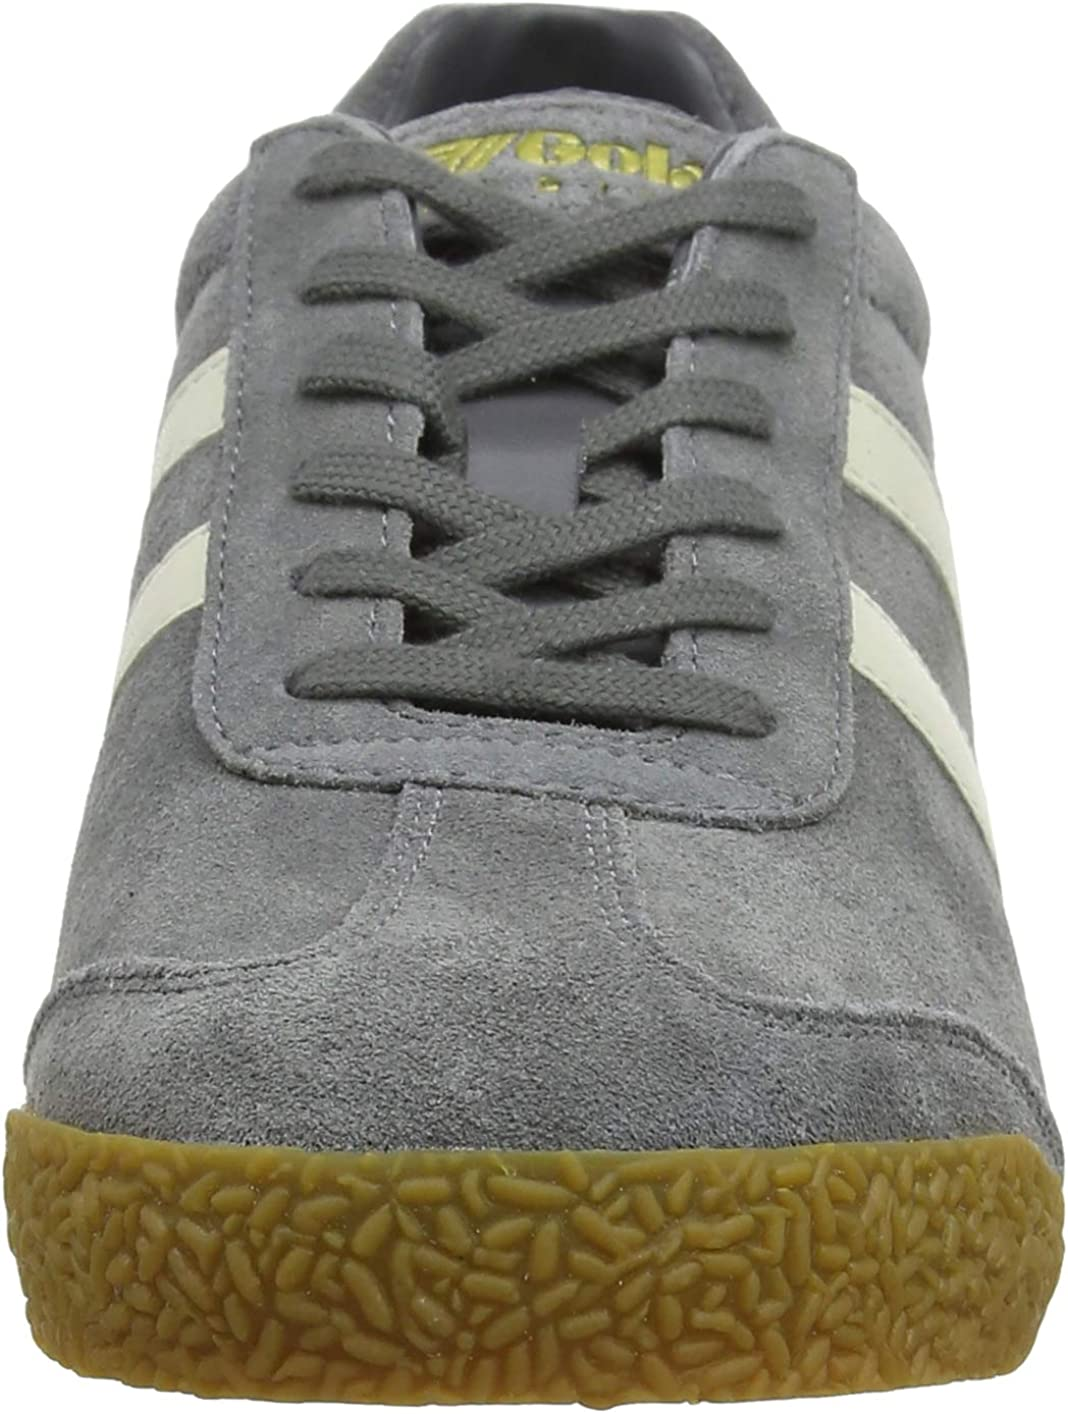 Gola Men's Harrier Fashion Sneaker